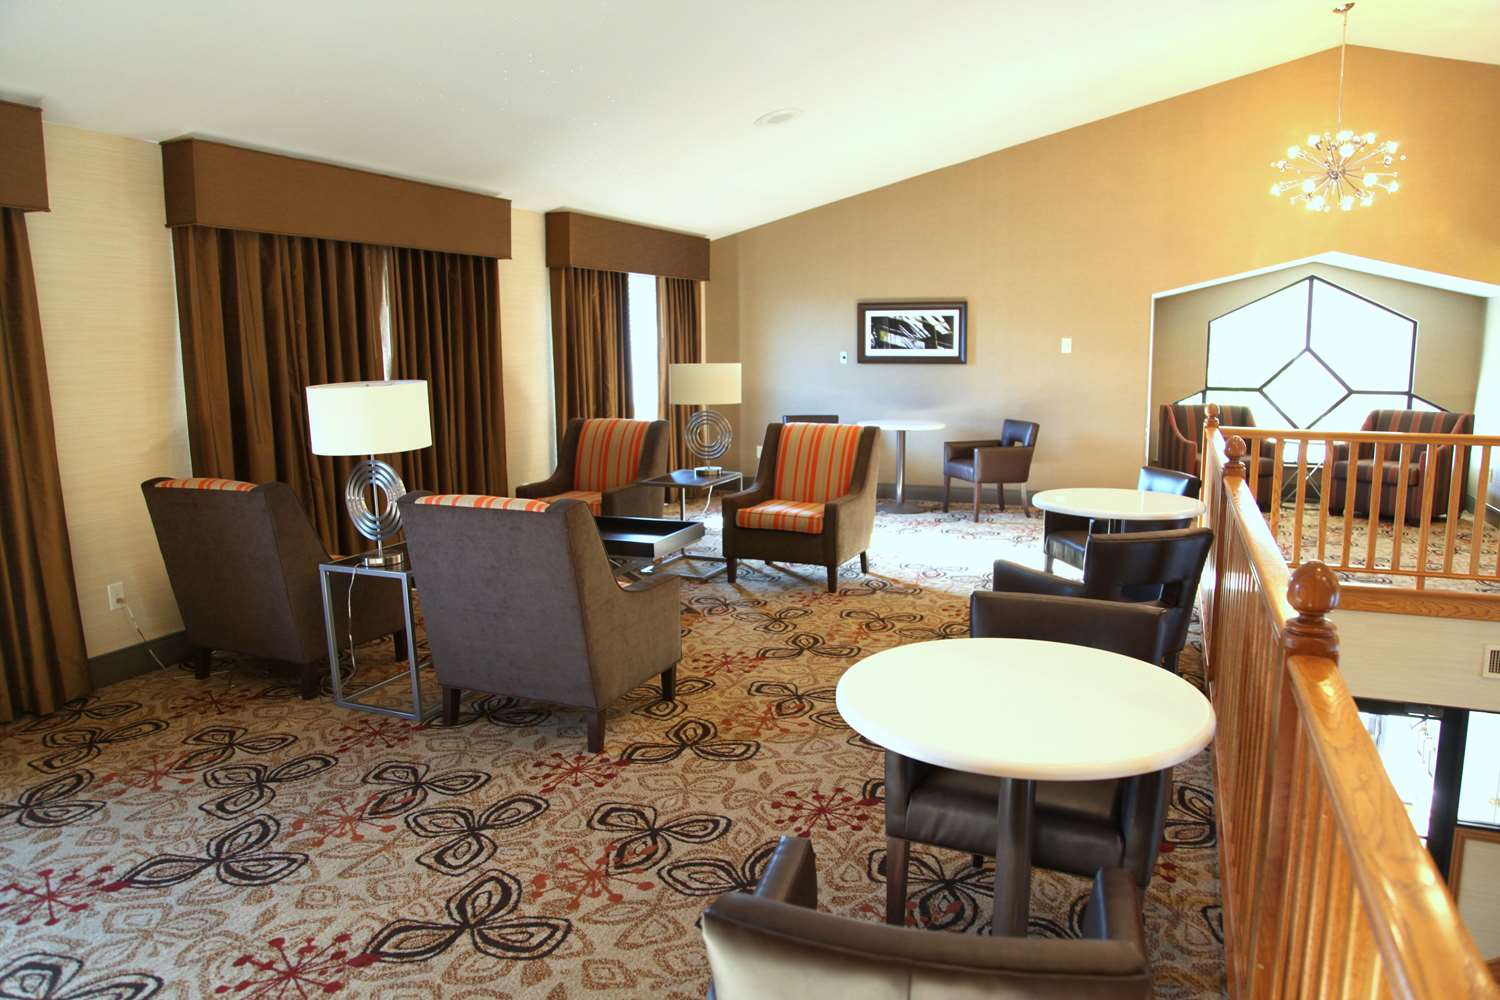 Best Western Hotel Falcon Plaza Bowling Green, OH - See Discounts